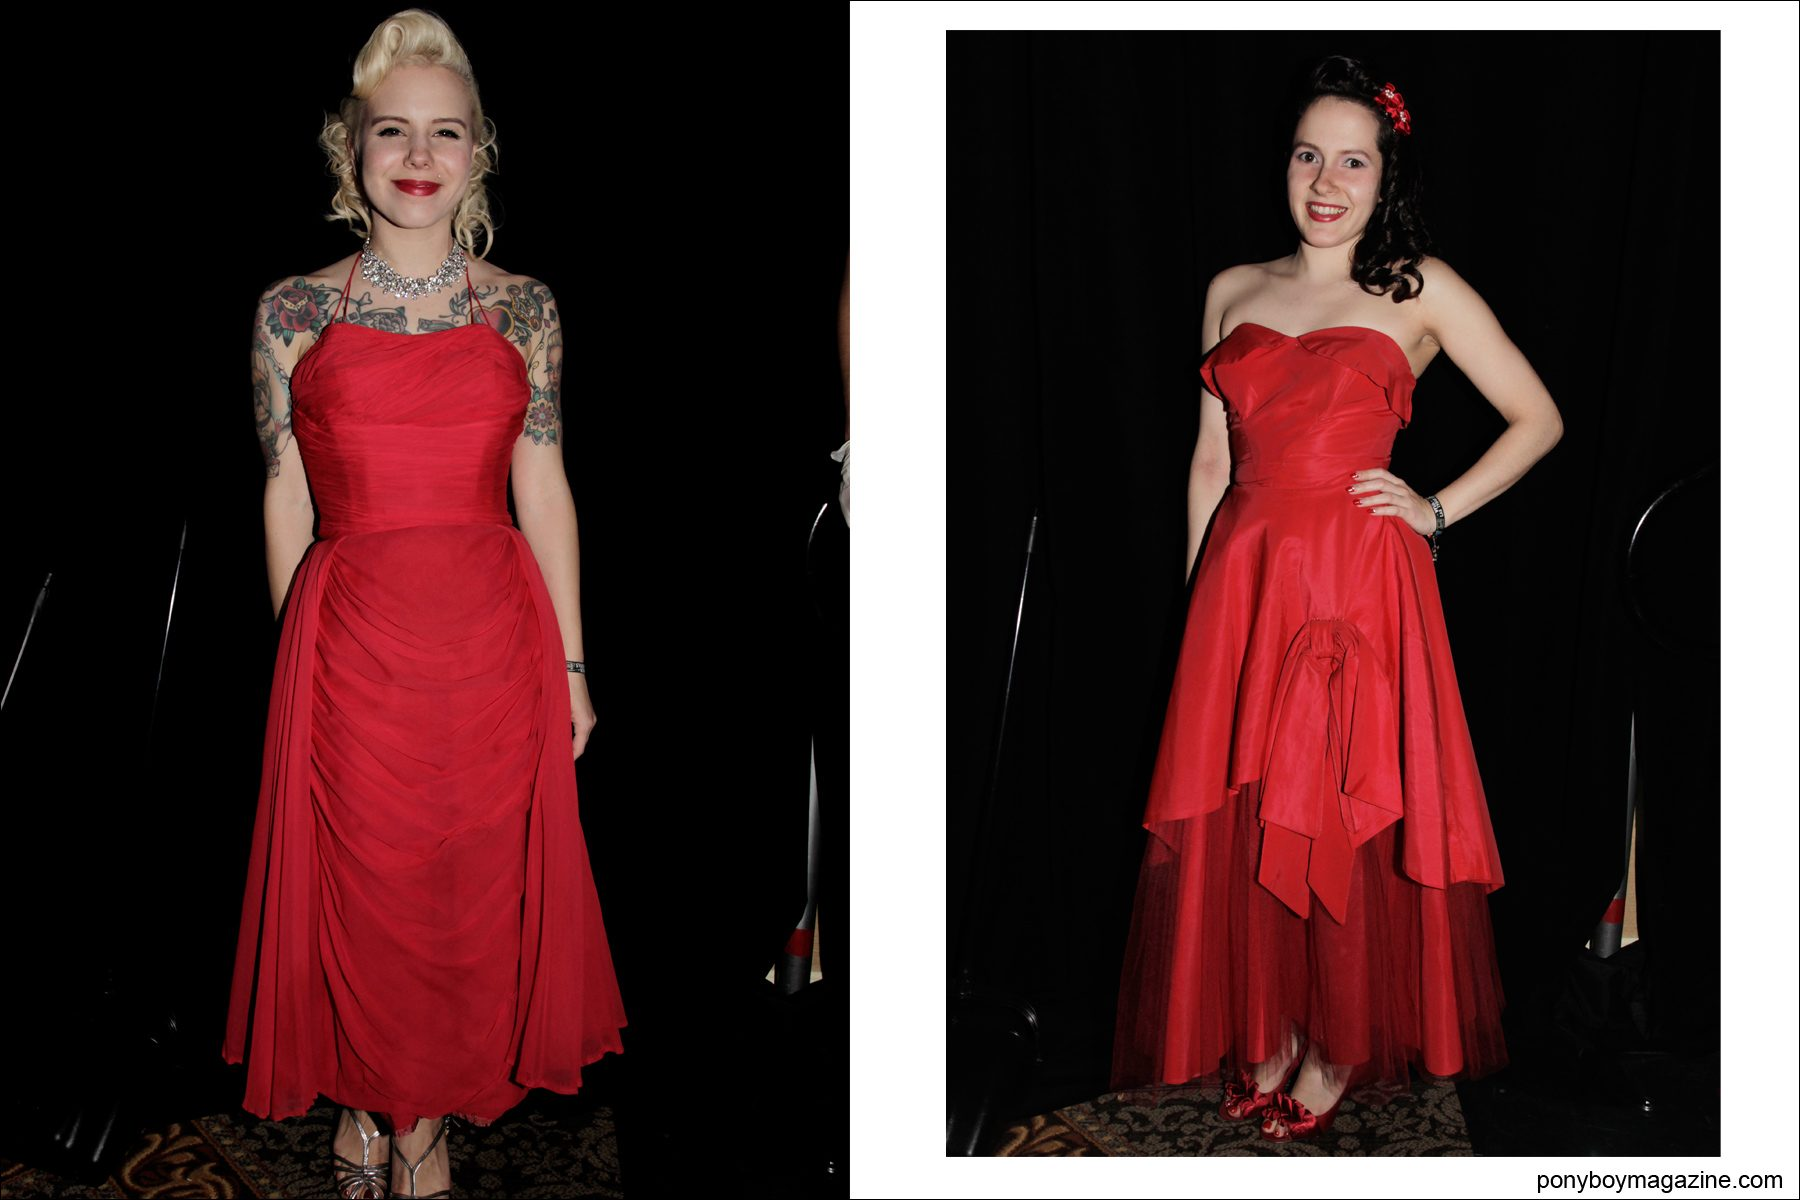 1950's red vintage gowns photographed on young women by Alexander Thompson for Ponyboy Magazine at Tom Ingram's Viva Las Vegas 17 weekender.